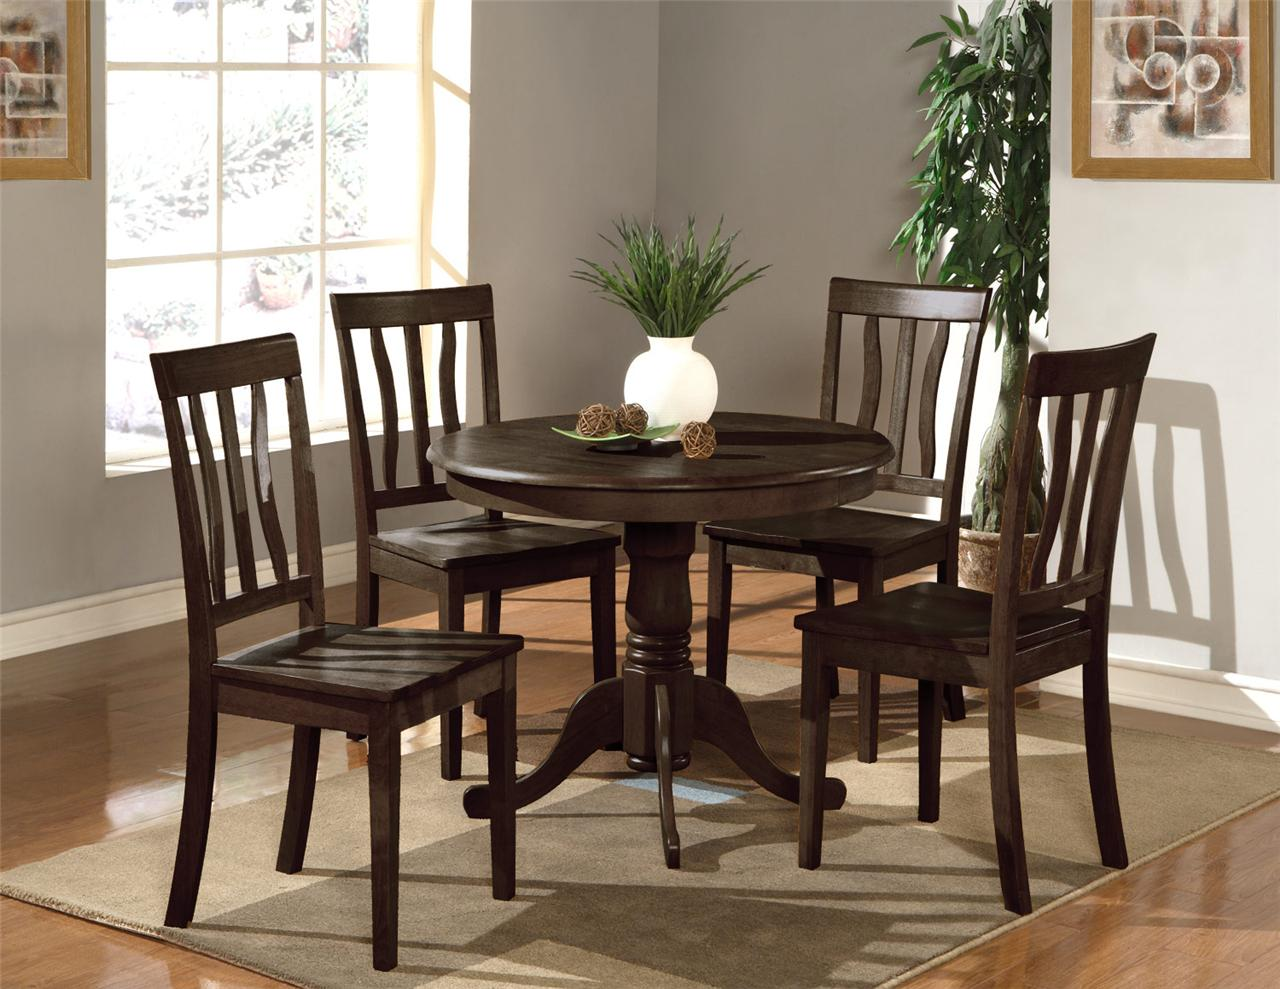 Round Kitchen Table And Chairs Set 5 Pc Round Table Dinette Kitchen Table And 4 Wood Or Padded